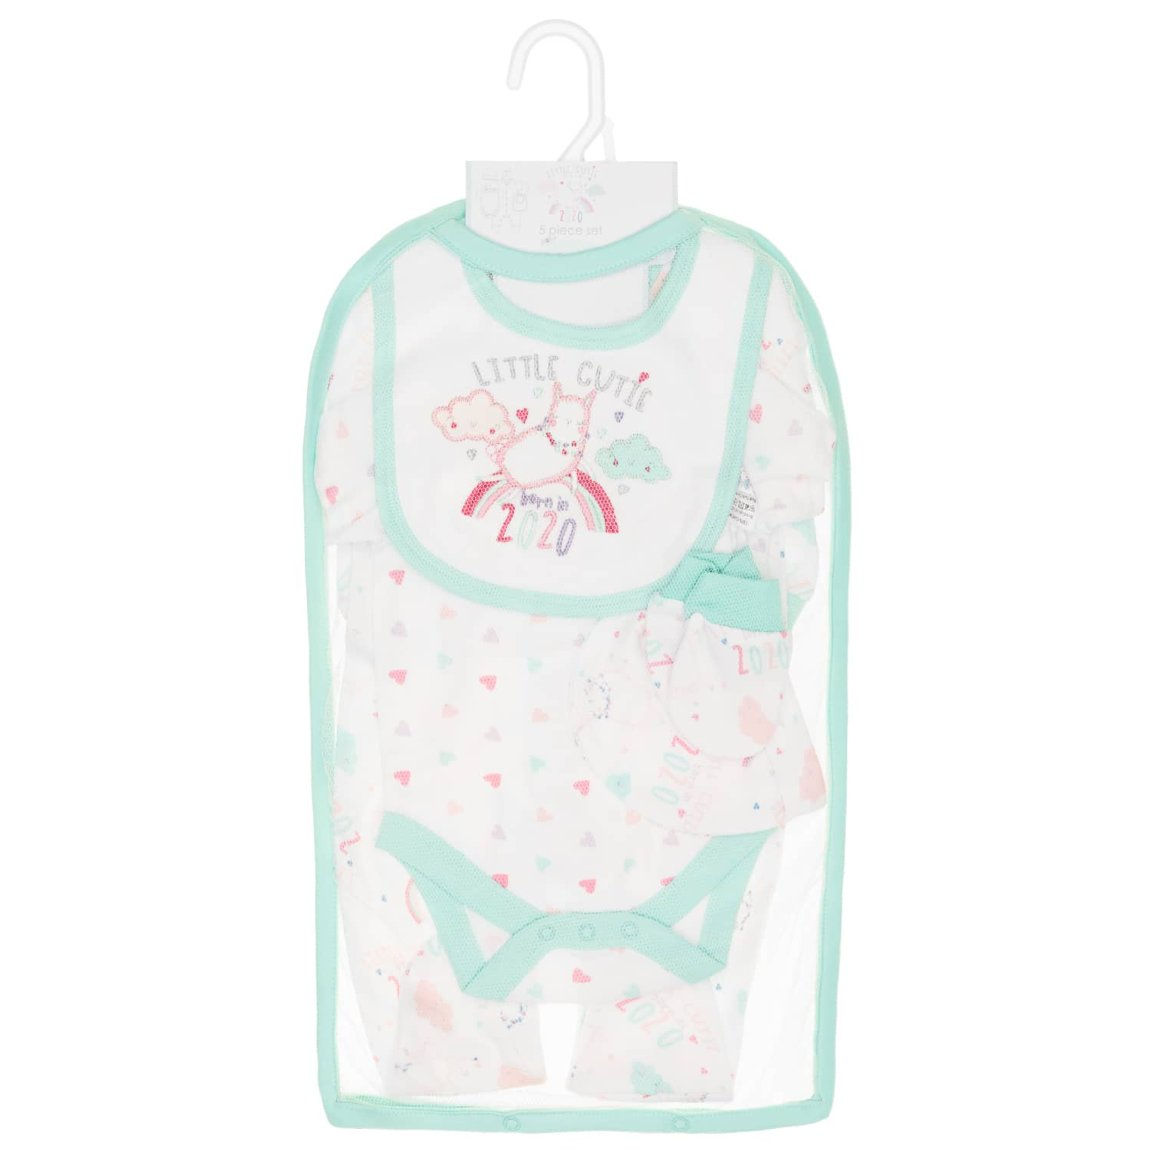 Born in 2020 Baby 5pc Set - Little Cutie